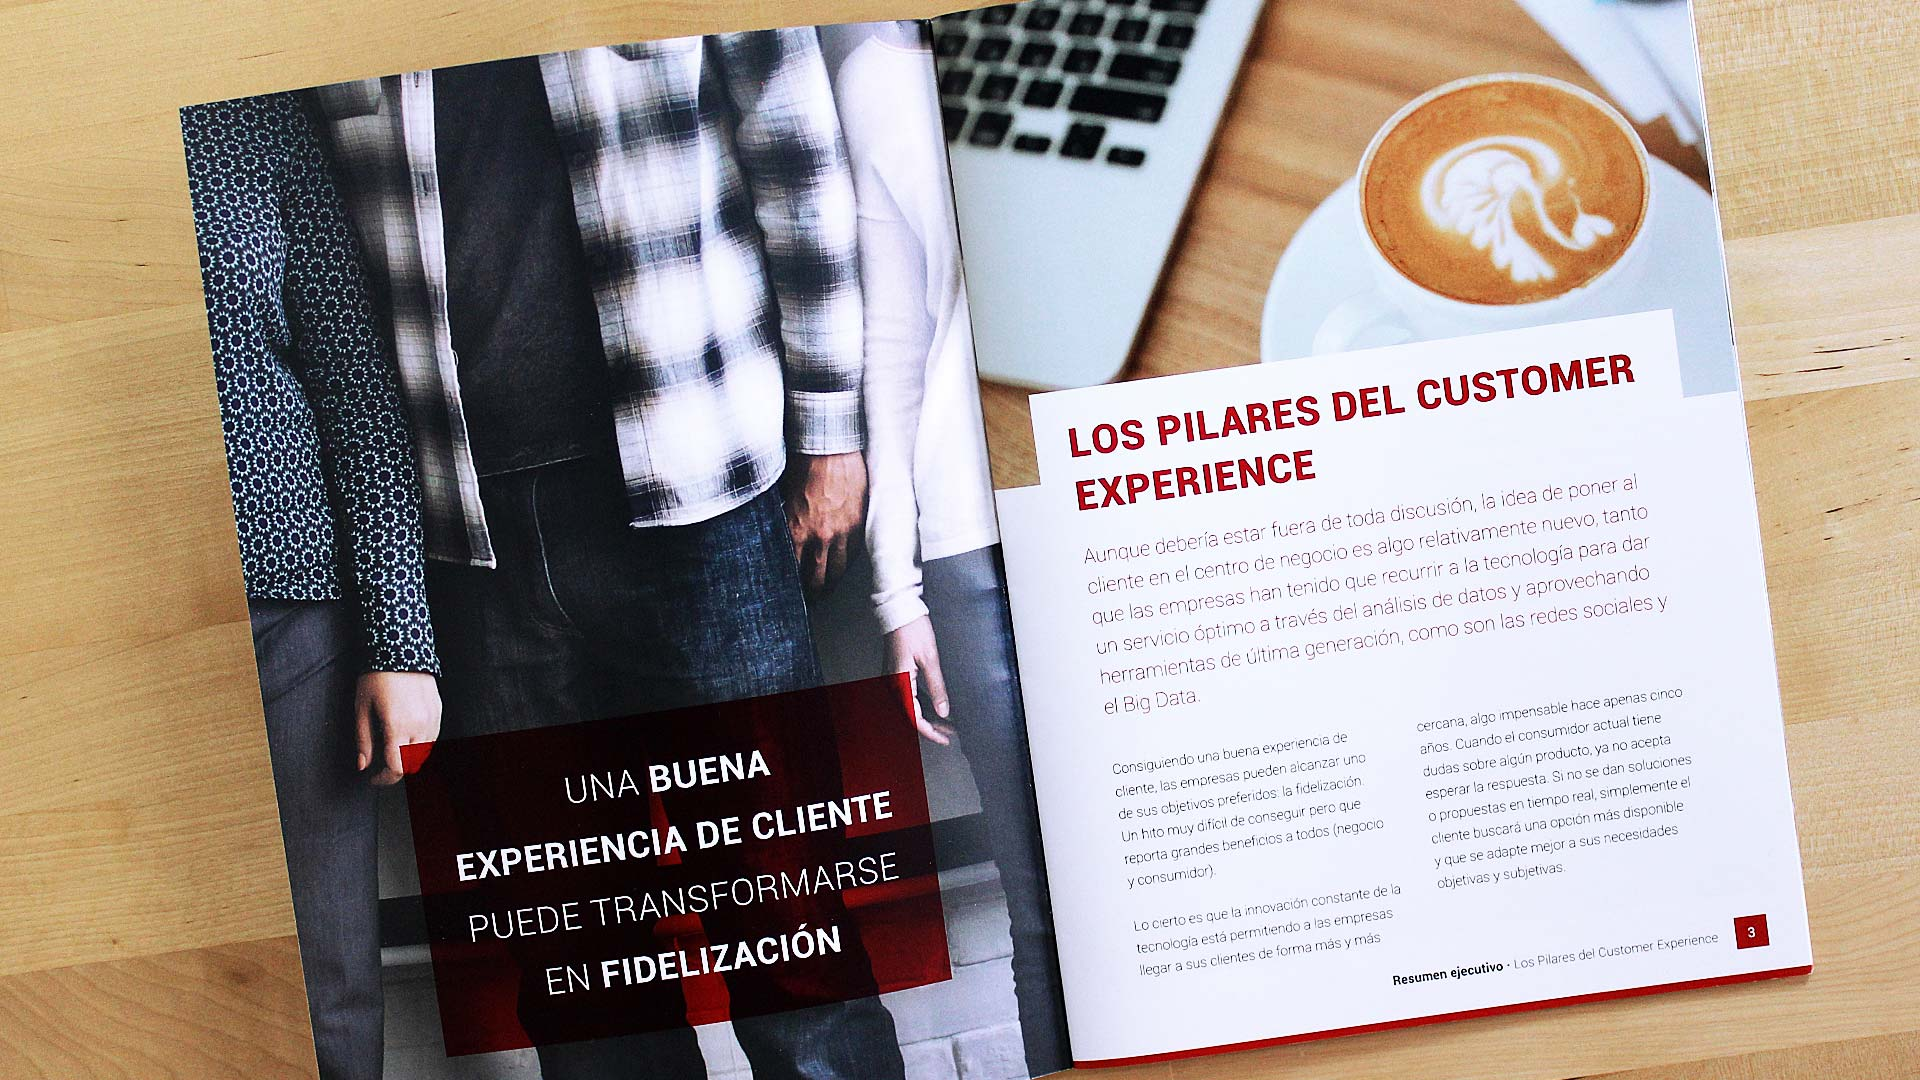 oracle-content-marketing-pilares-customer-experience-2017-02